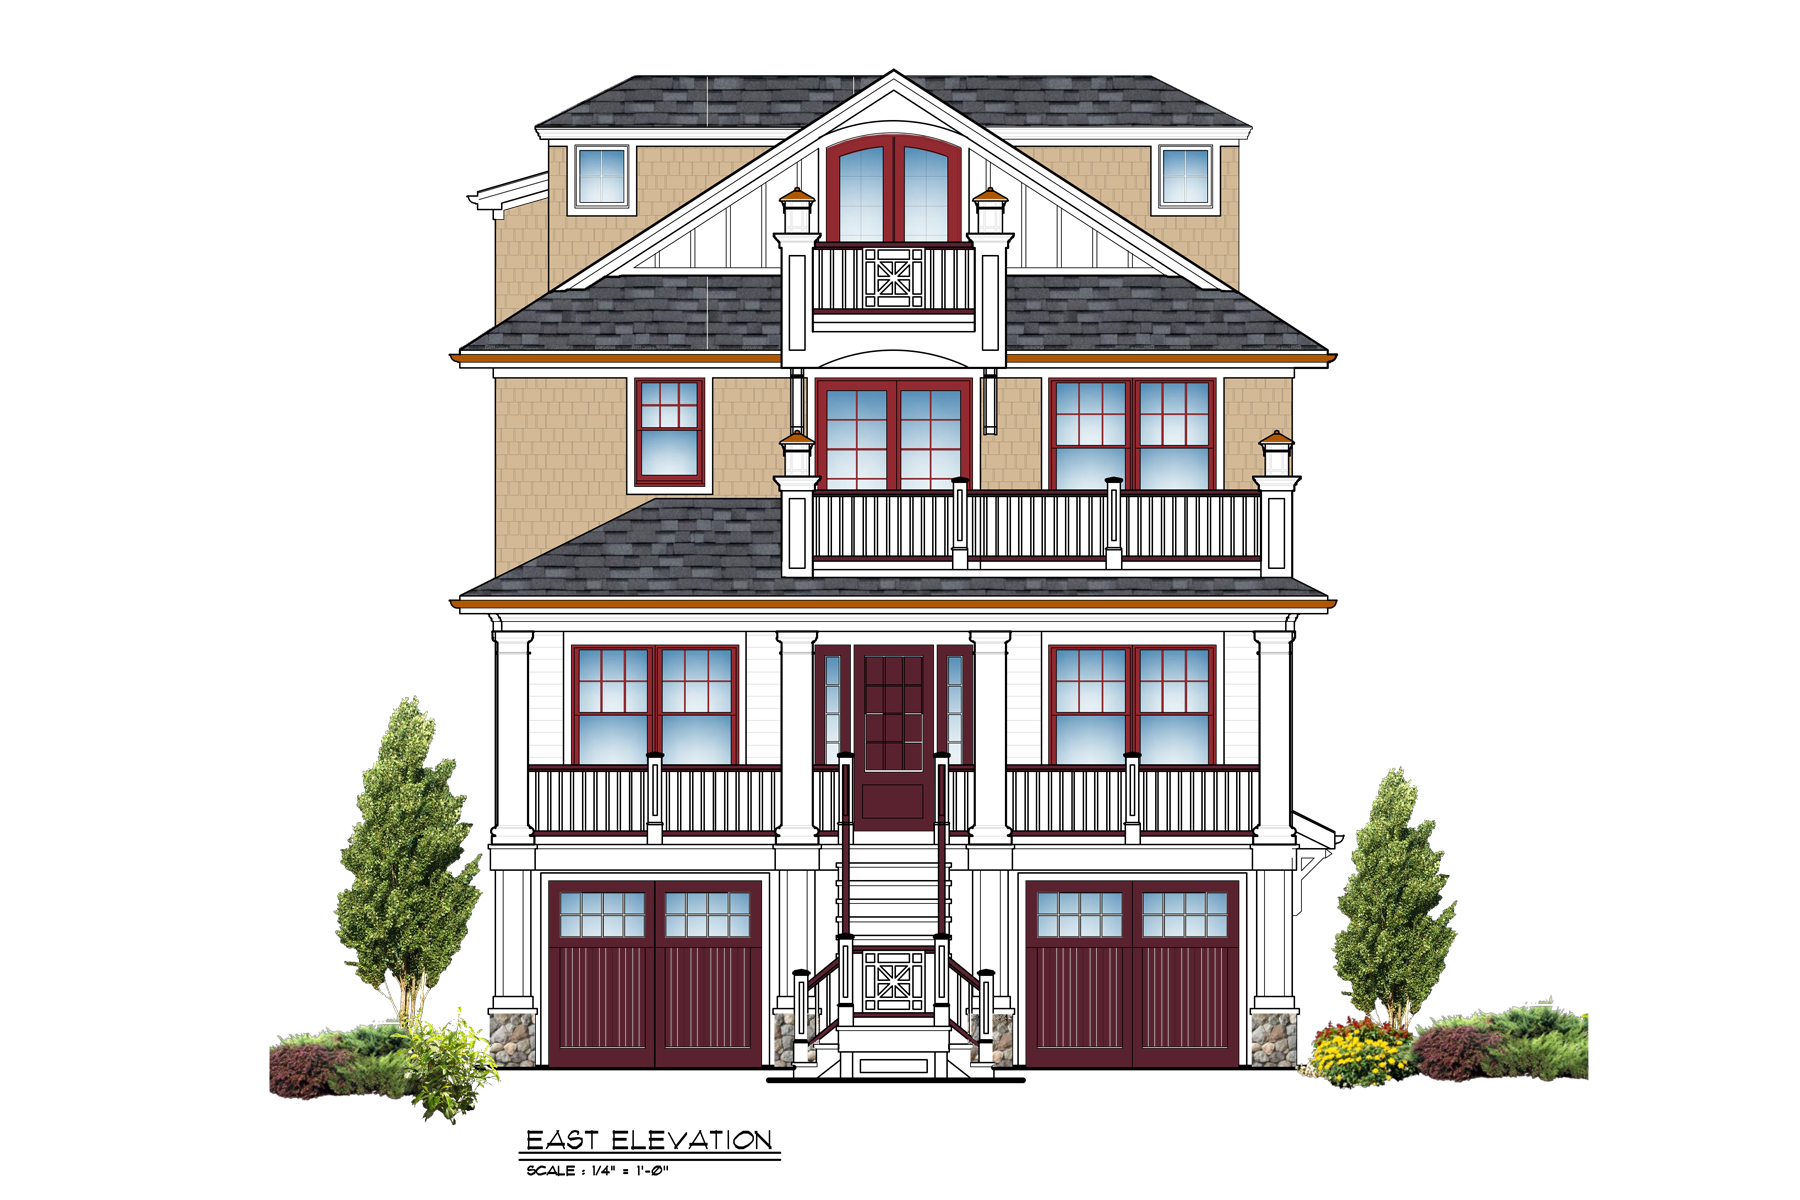 Single Family Home for Sale at Premier Location With Magnificent Ocean Views 519a Sunset Boulevard, Mantoloking, New Jersey 08738 United States